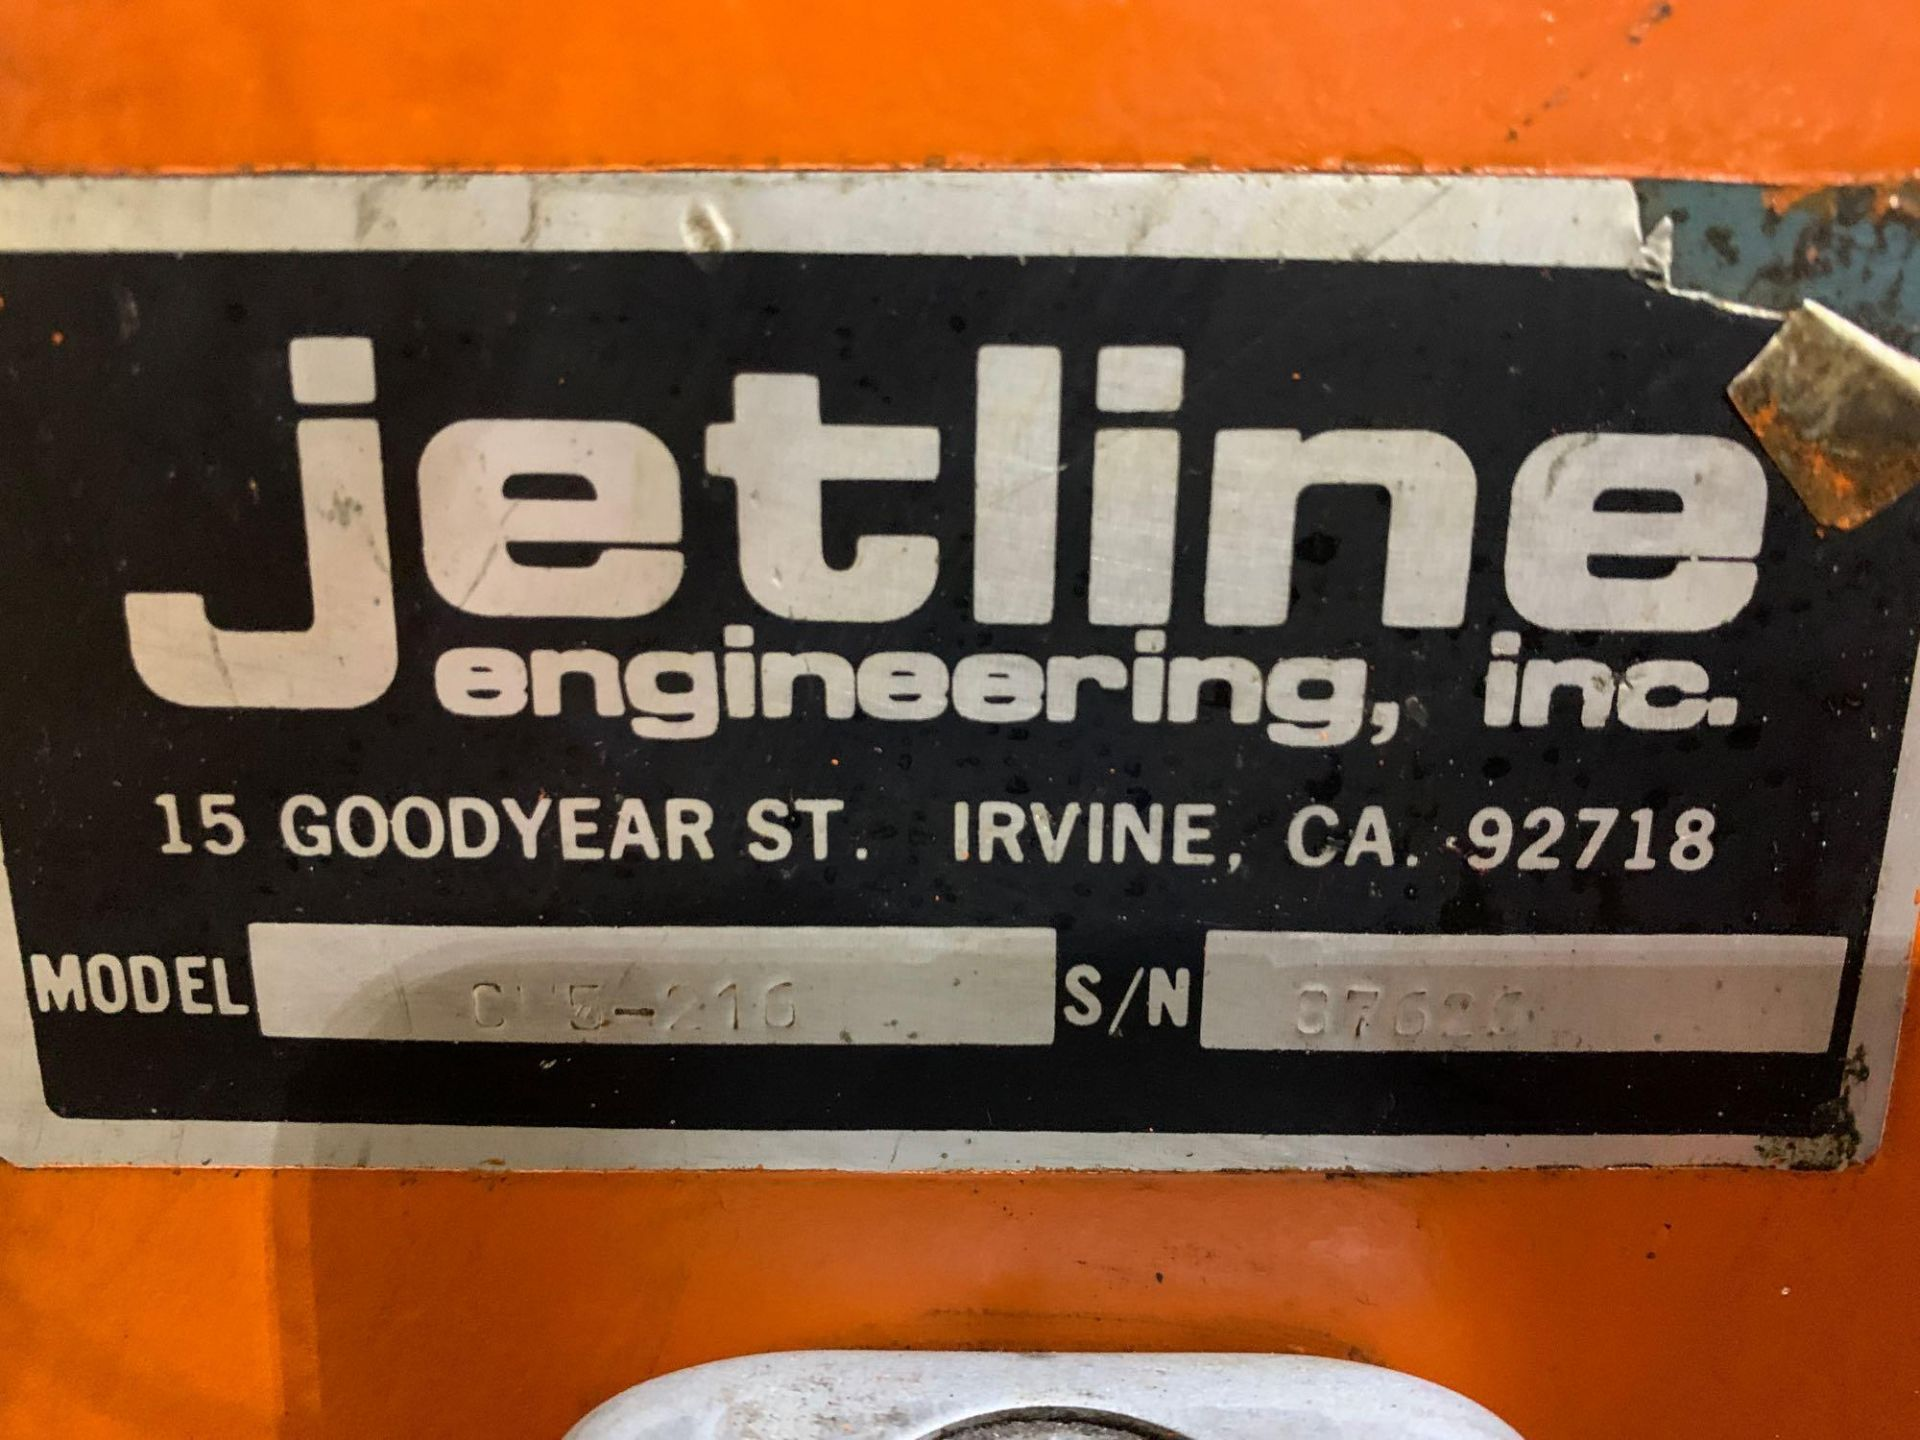 Jetline Welding Positioner Model CU5-216 Serial Number: 07625 Pipe Weld Positioner with Tail Stock I - Image 14 of 15